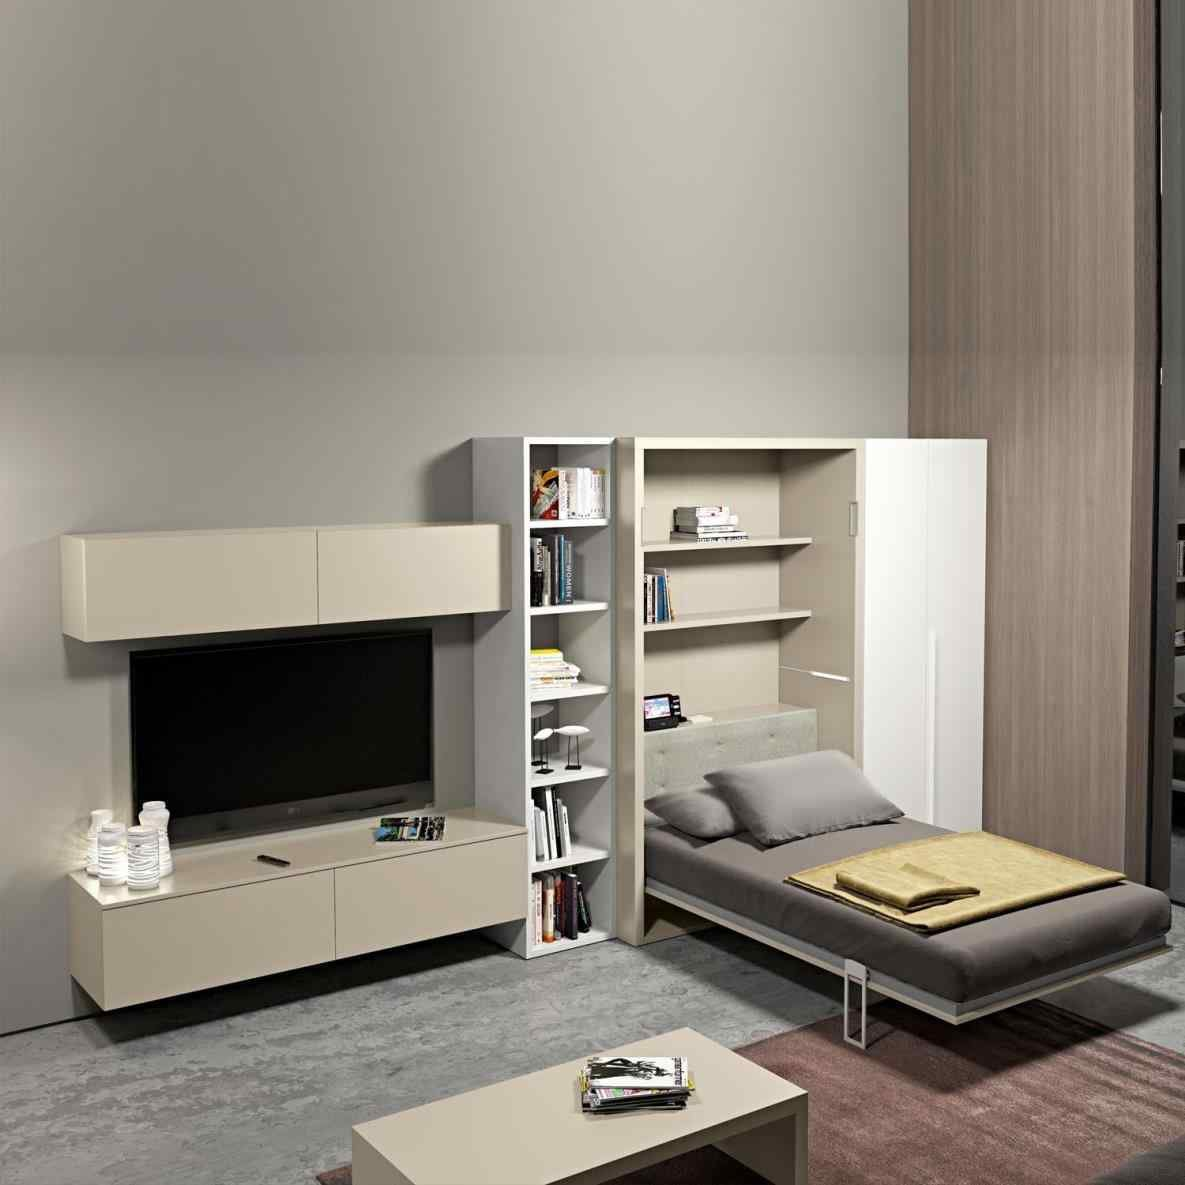 Best Multi Purpose Furniture For Small Spaces Breakpr With Pictures